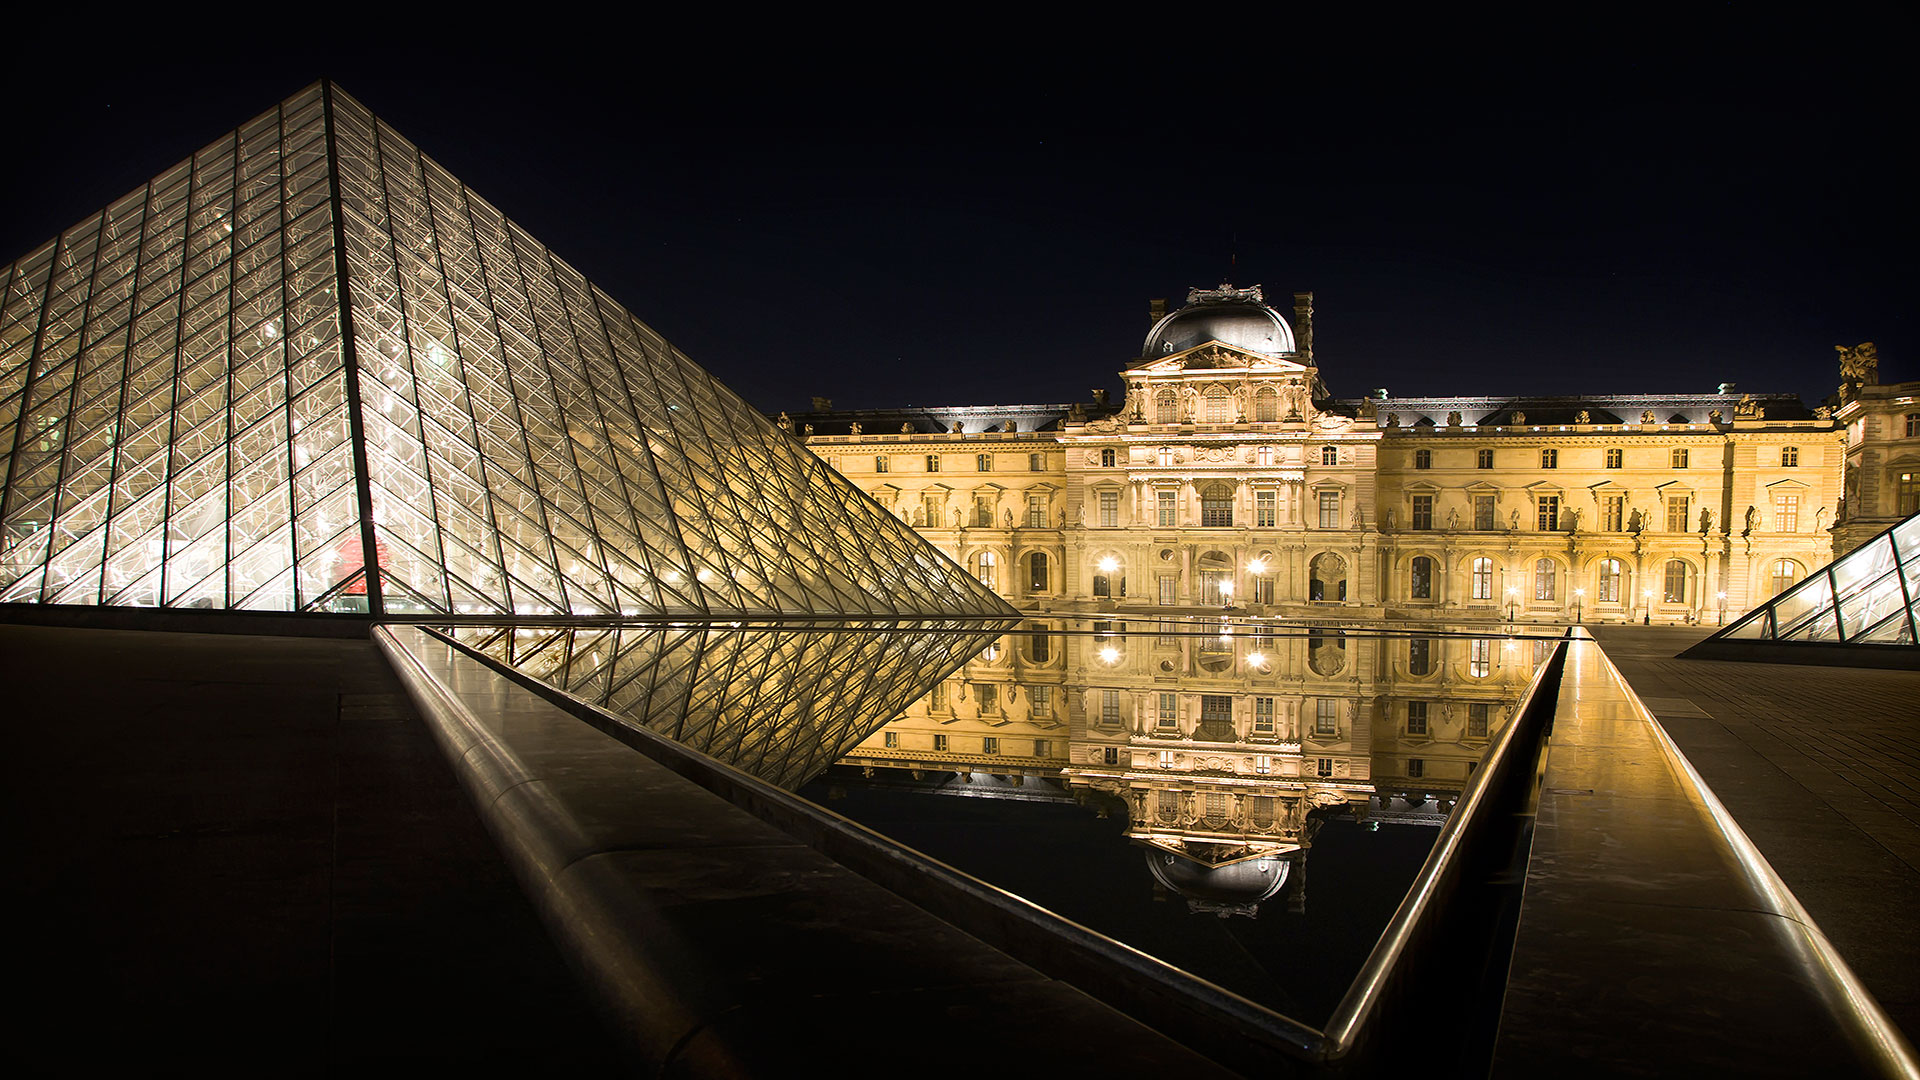 Louvre. Paris, France